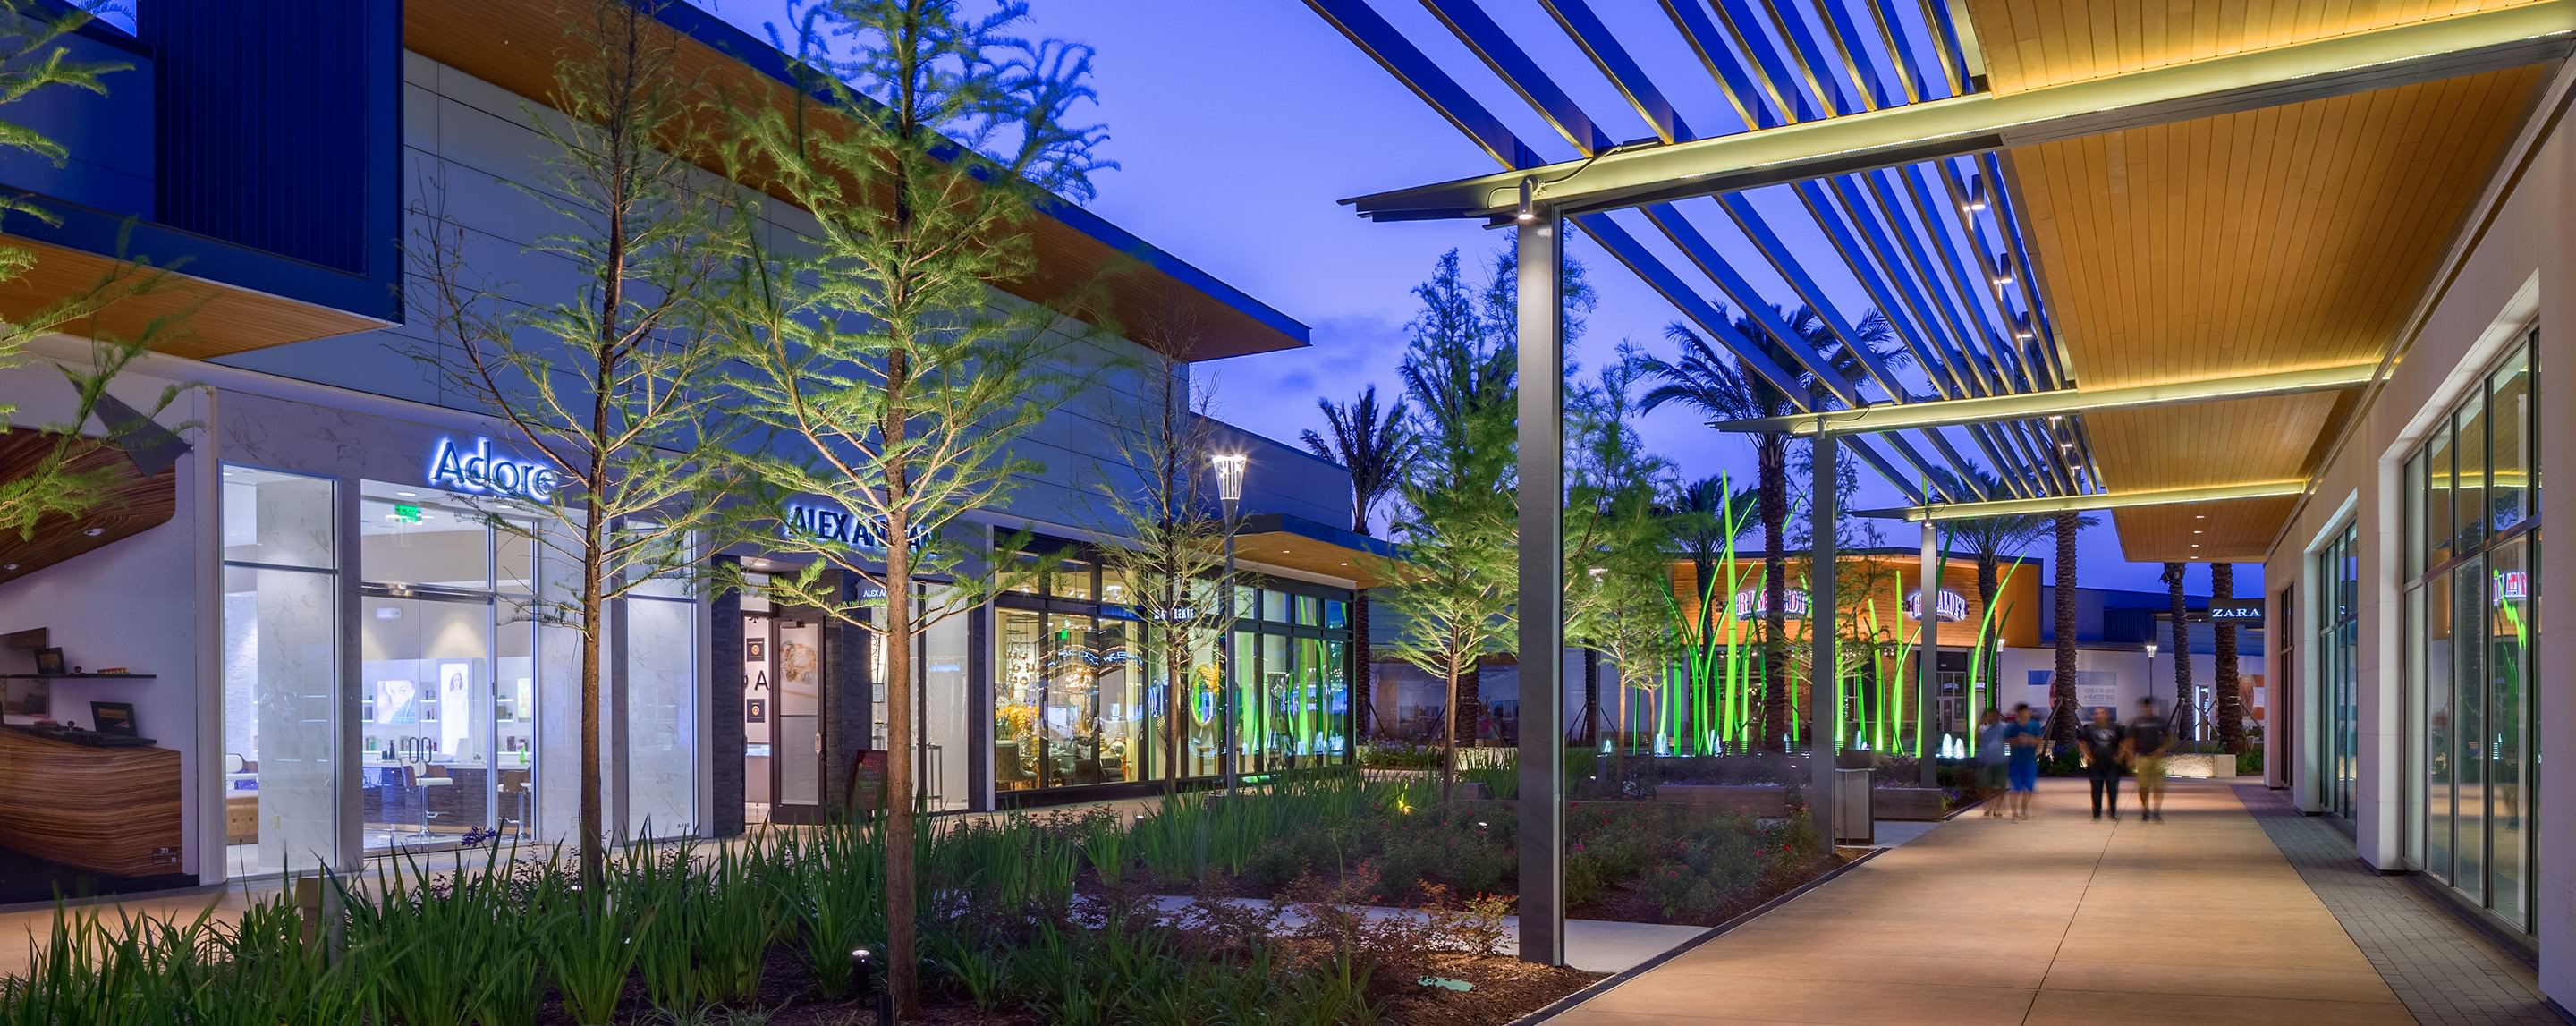 One of the well-lit outdoor walkways at Baybrook mall allows shoppers to view storefronts, trees and greenery in the evening.